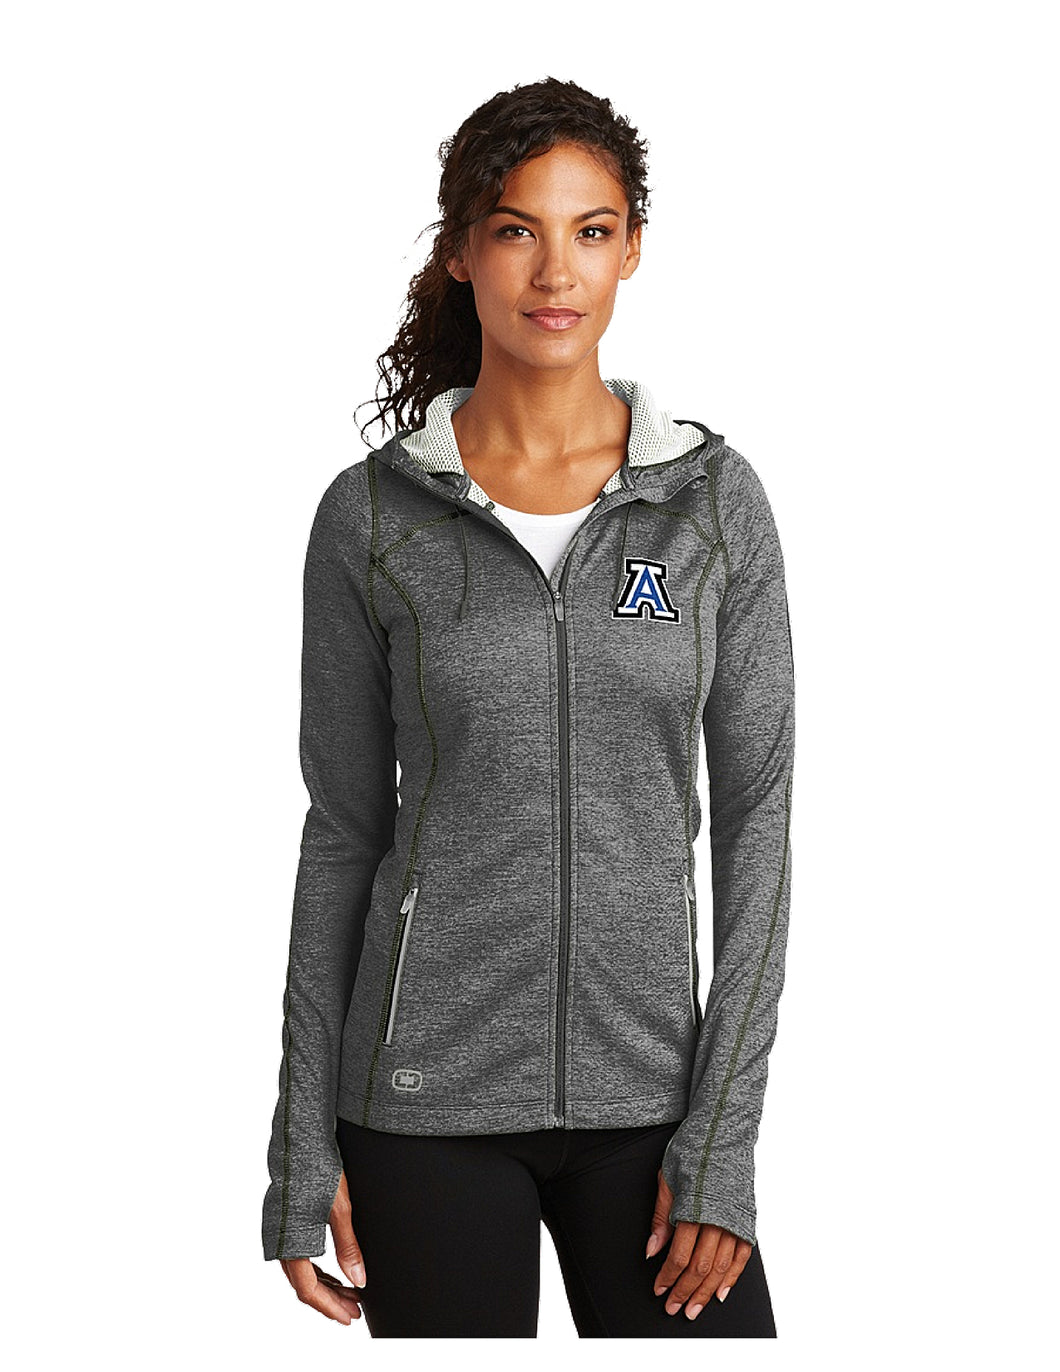 OGIO® ENDURANCE Ladies Pursuit Full-Zip Hoodie Diesel Grey with Embroidered Acalanes